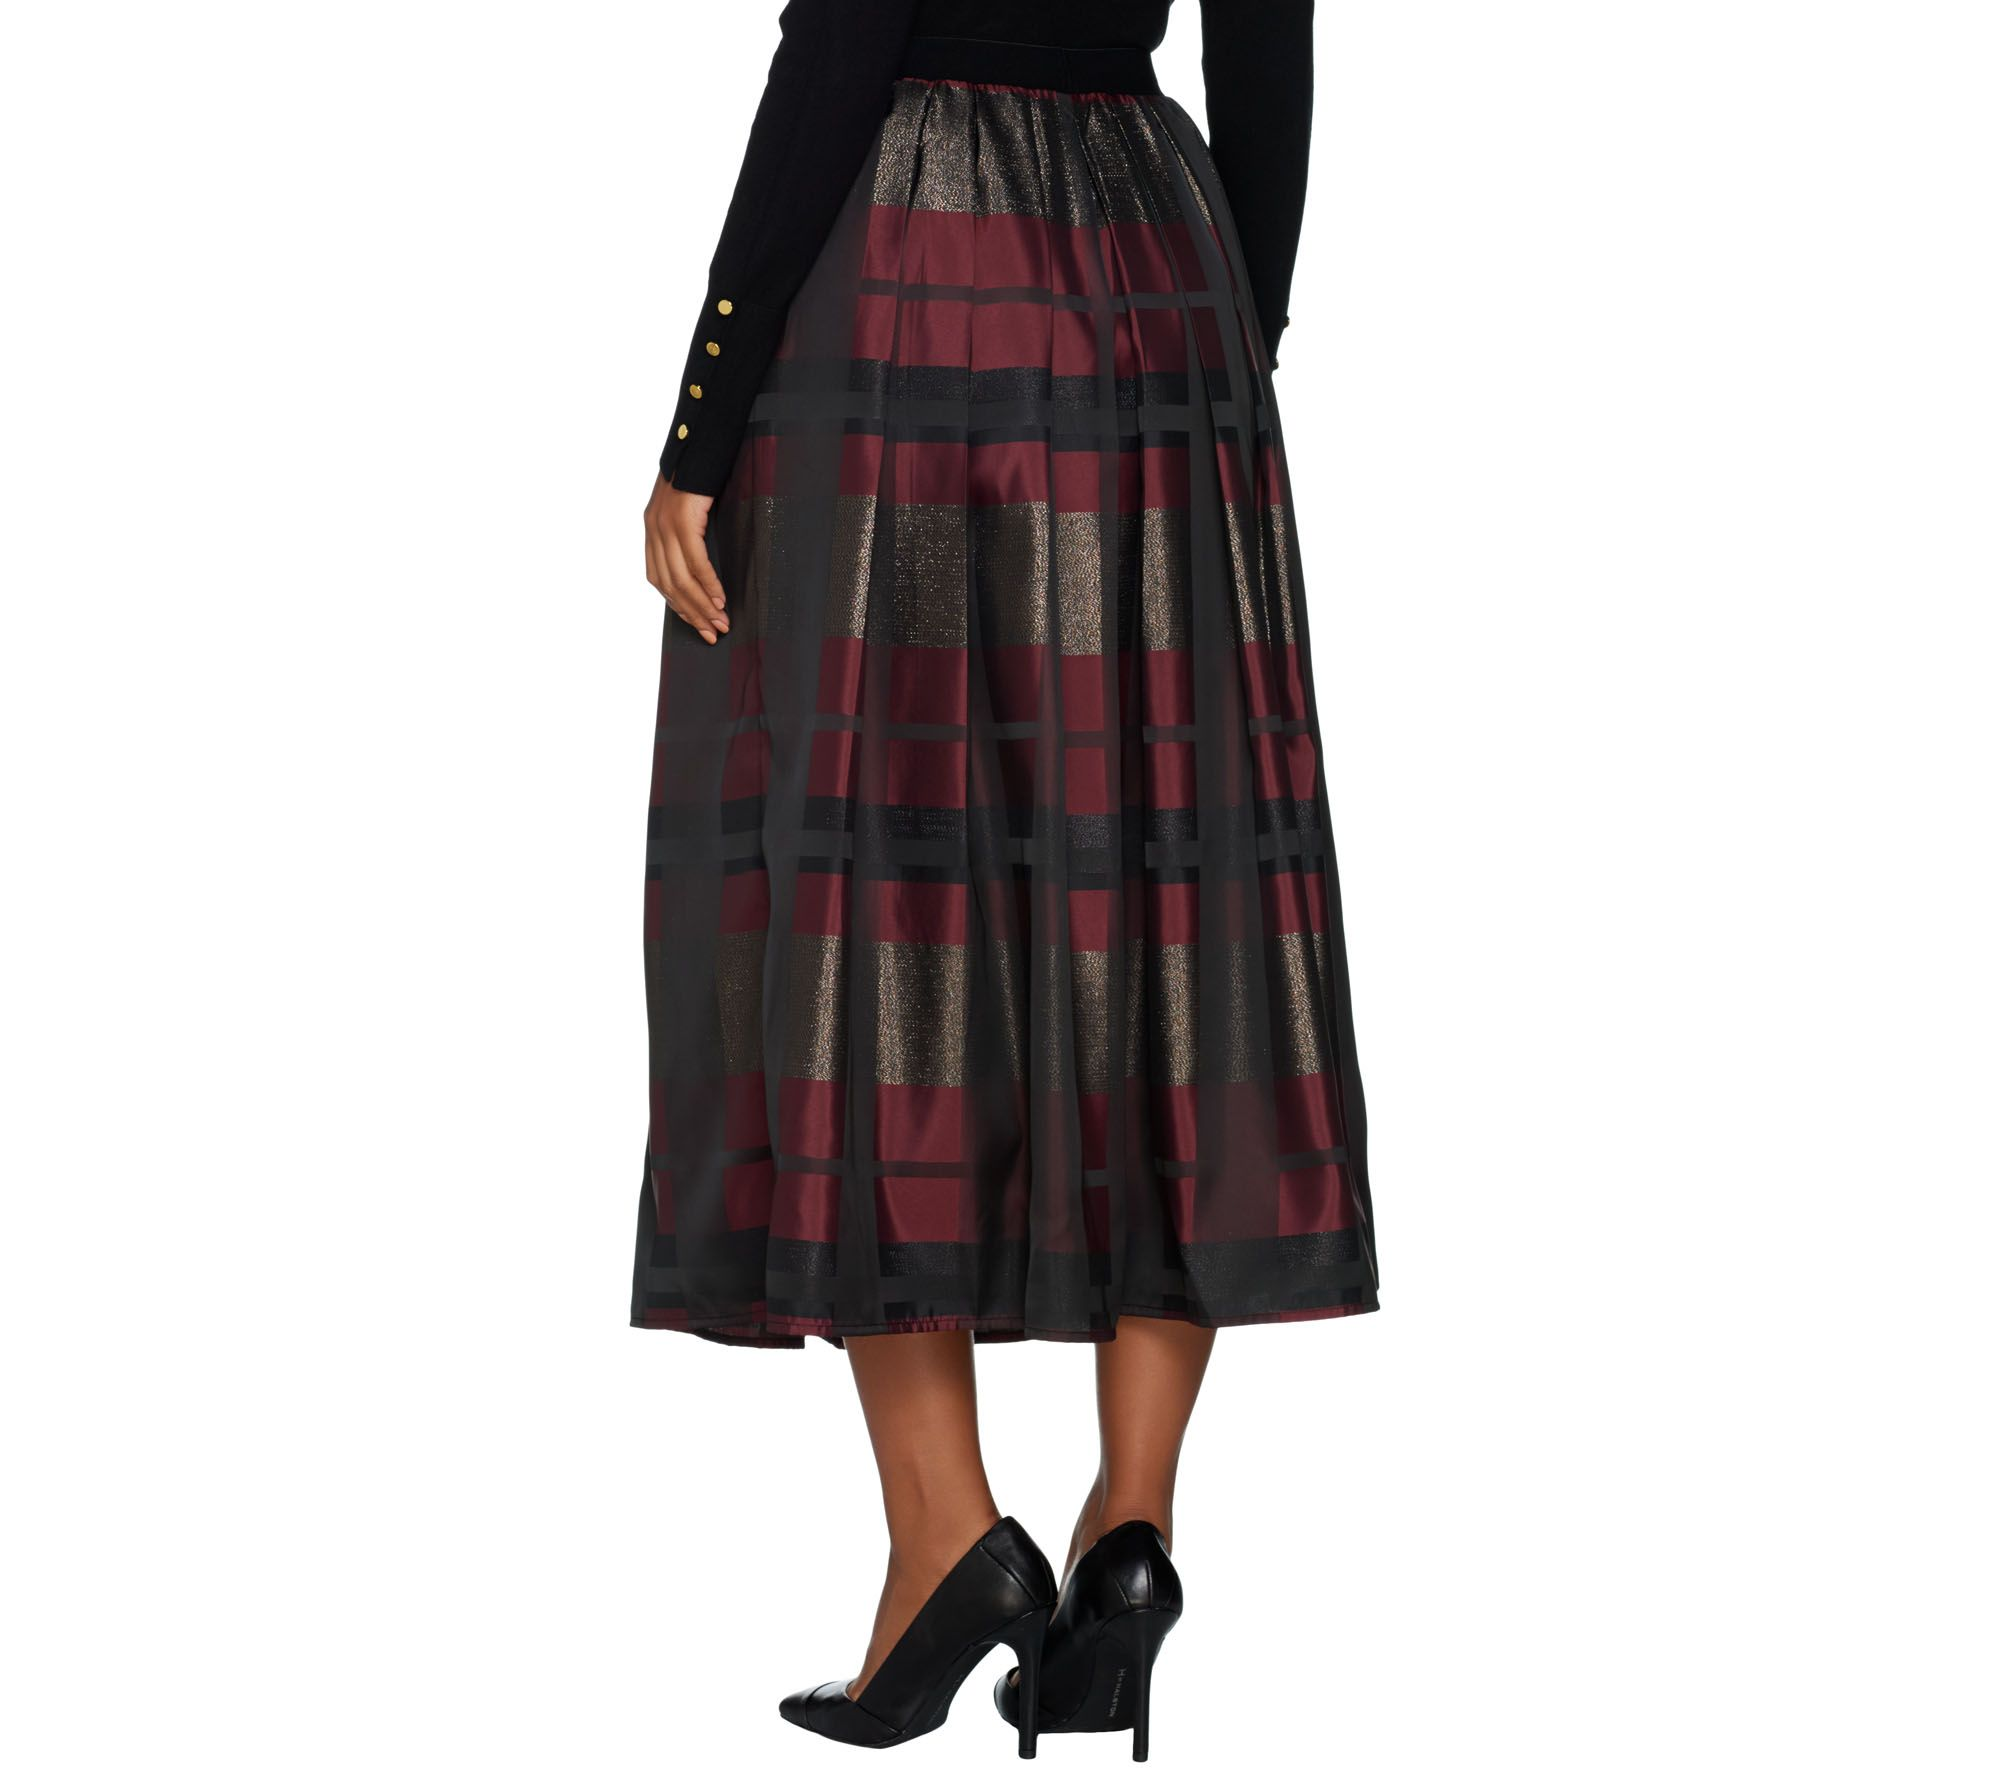 6422fb250f Joan Rivers Regular Glamorous Plaid Midi Skirt - Page 1 — QVC.com